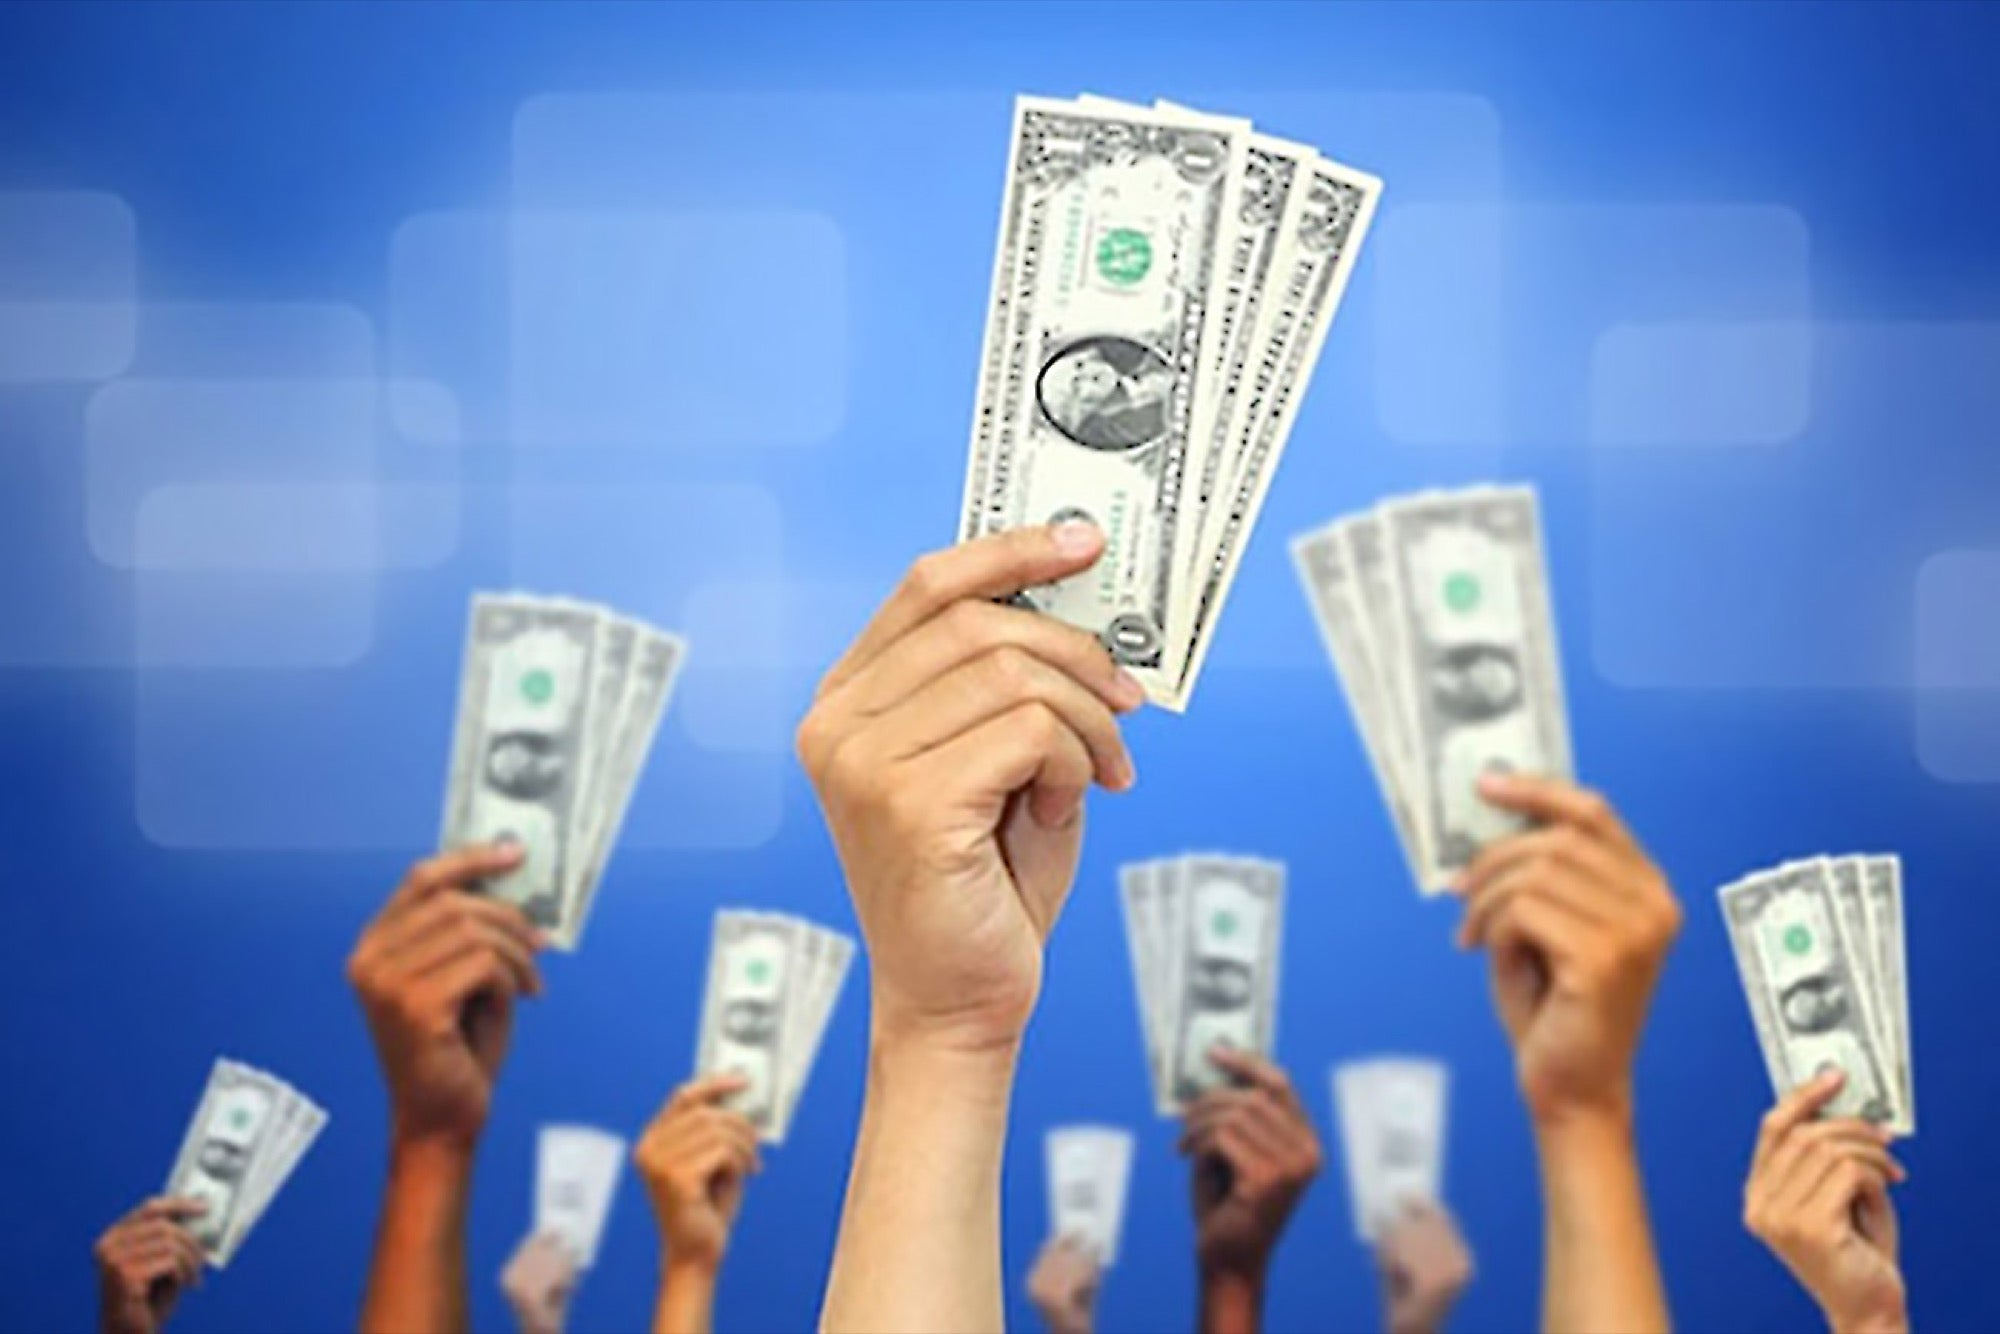 Crowdfunding: raising money for a startup